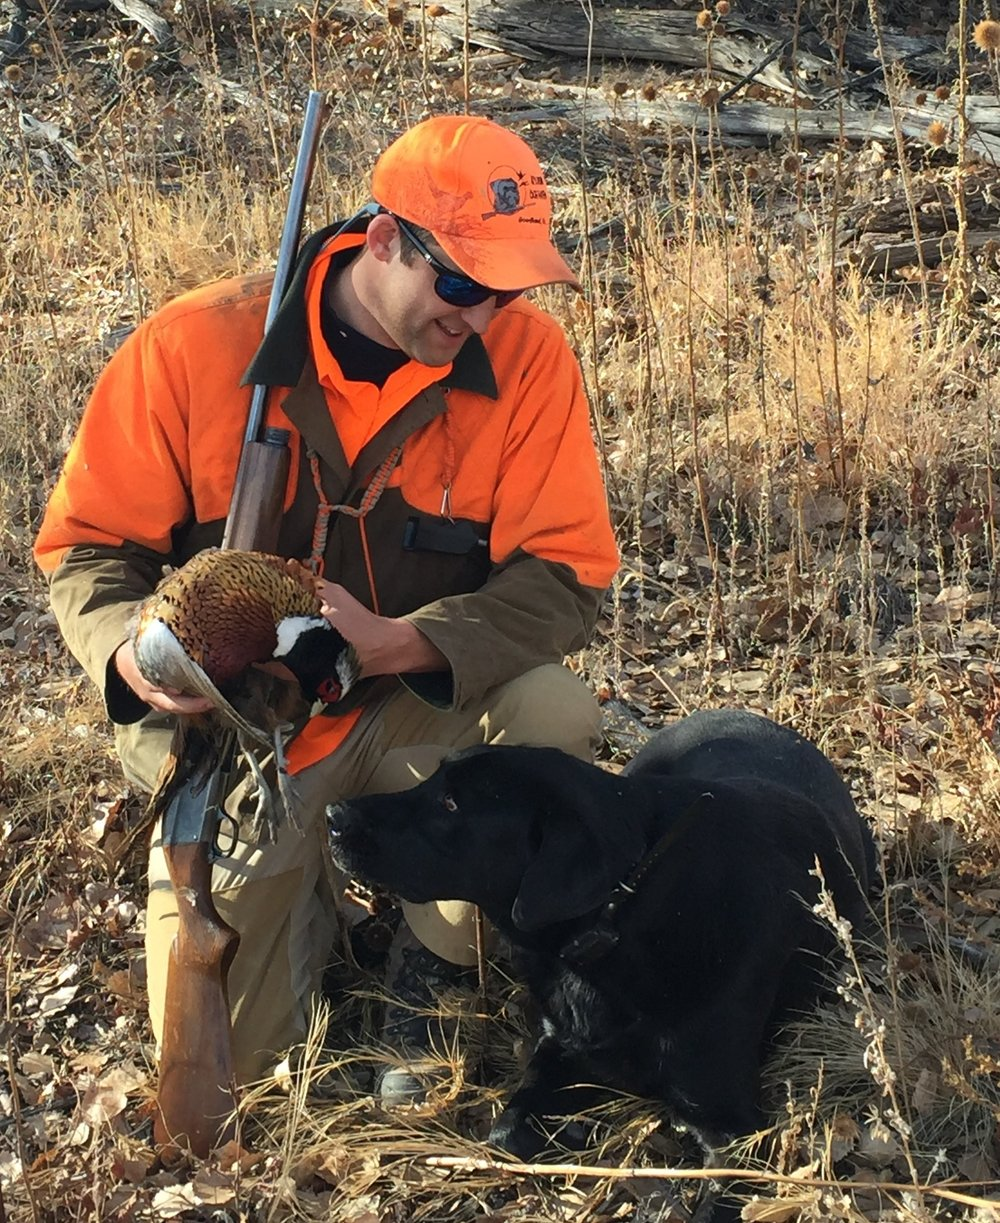 Hunting Attorney Nathaniel Gilbert on a public land pheasant hunt in 2016. Nathaniel is a fierce advocate for outdoorsman both in the courtroom and in the field. Having been raised hunting and fishing, Nathaniel understands the issues and obstacles facing sportsmen and women and dedicates a majority of his legal practice to defending the rights of hunting and fishing advocates in Colorado, Kansas, and nationwide.